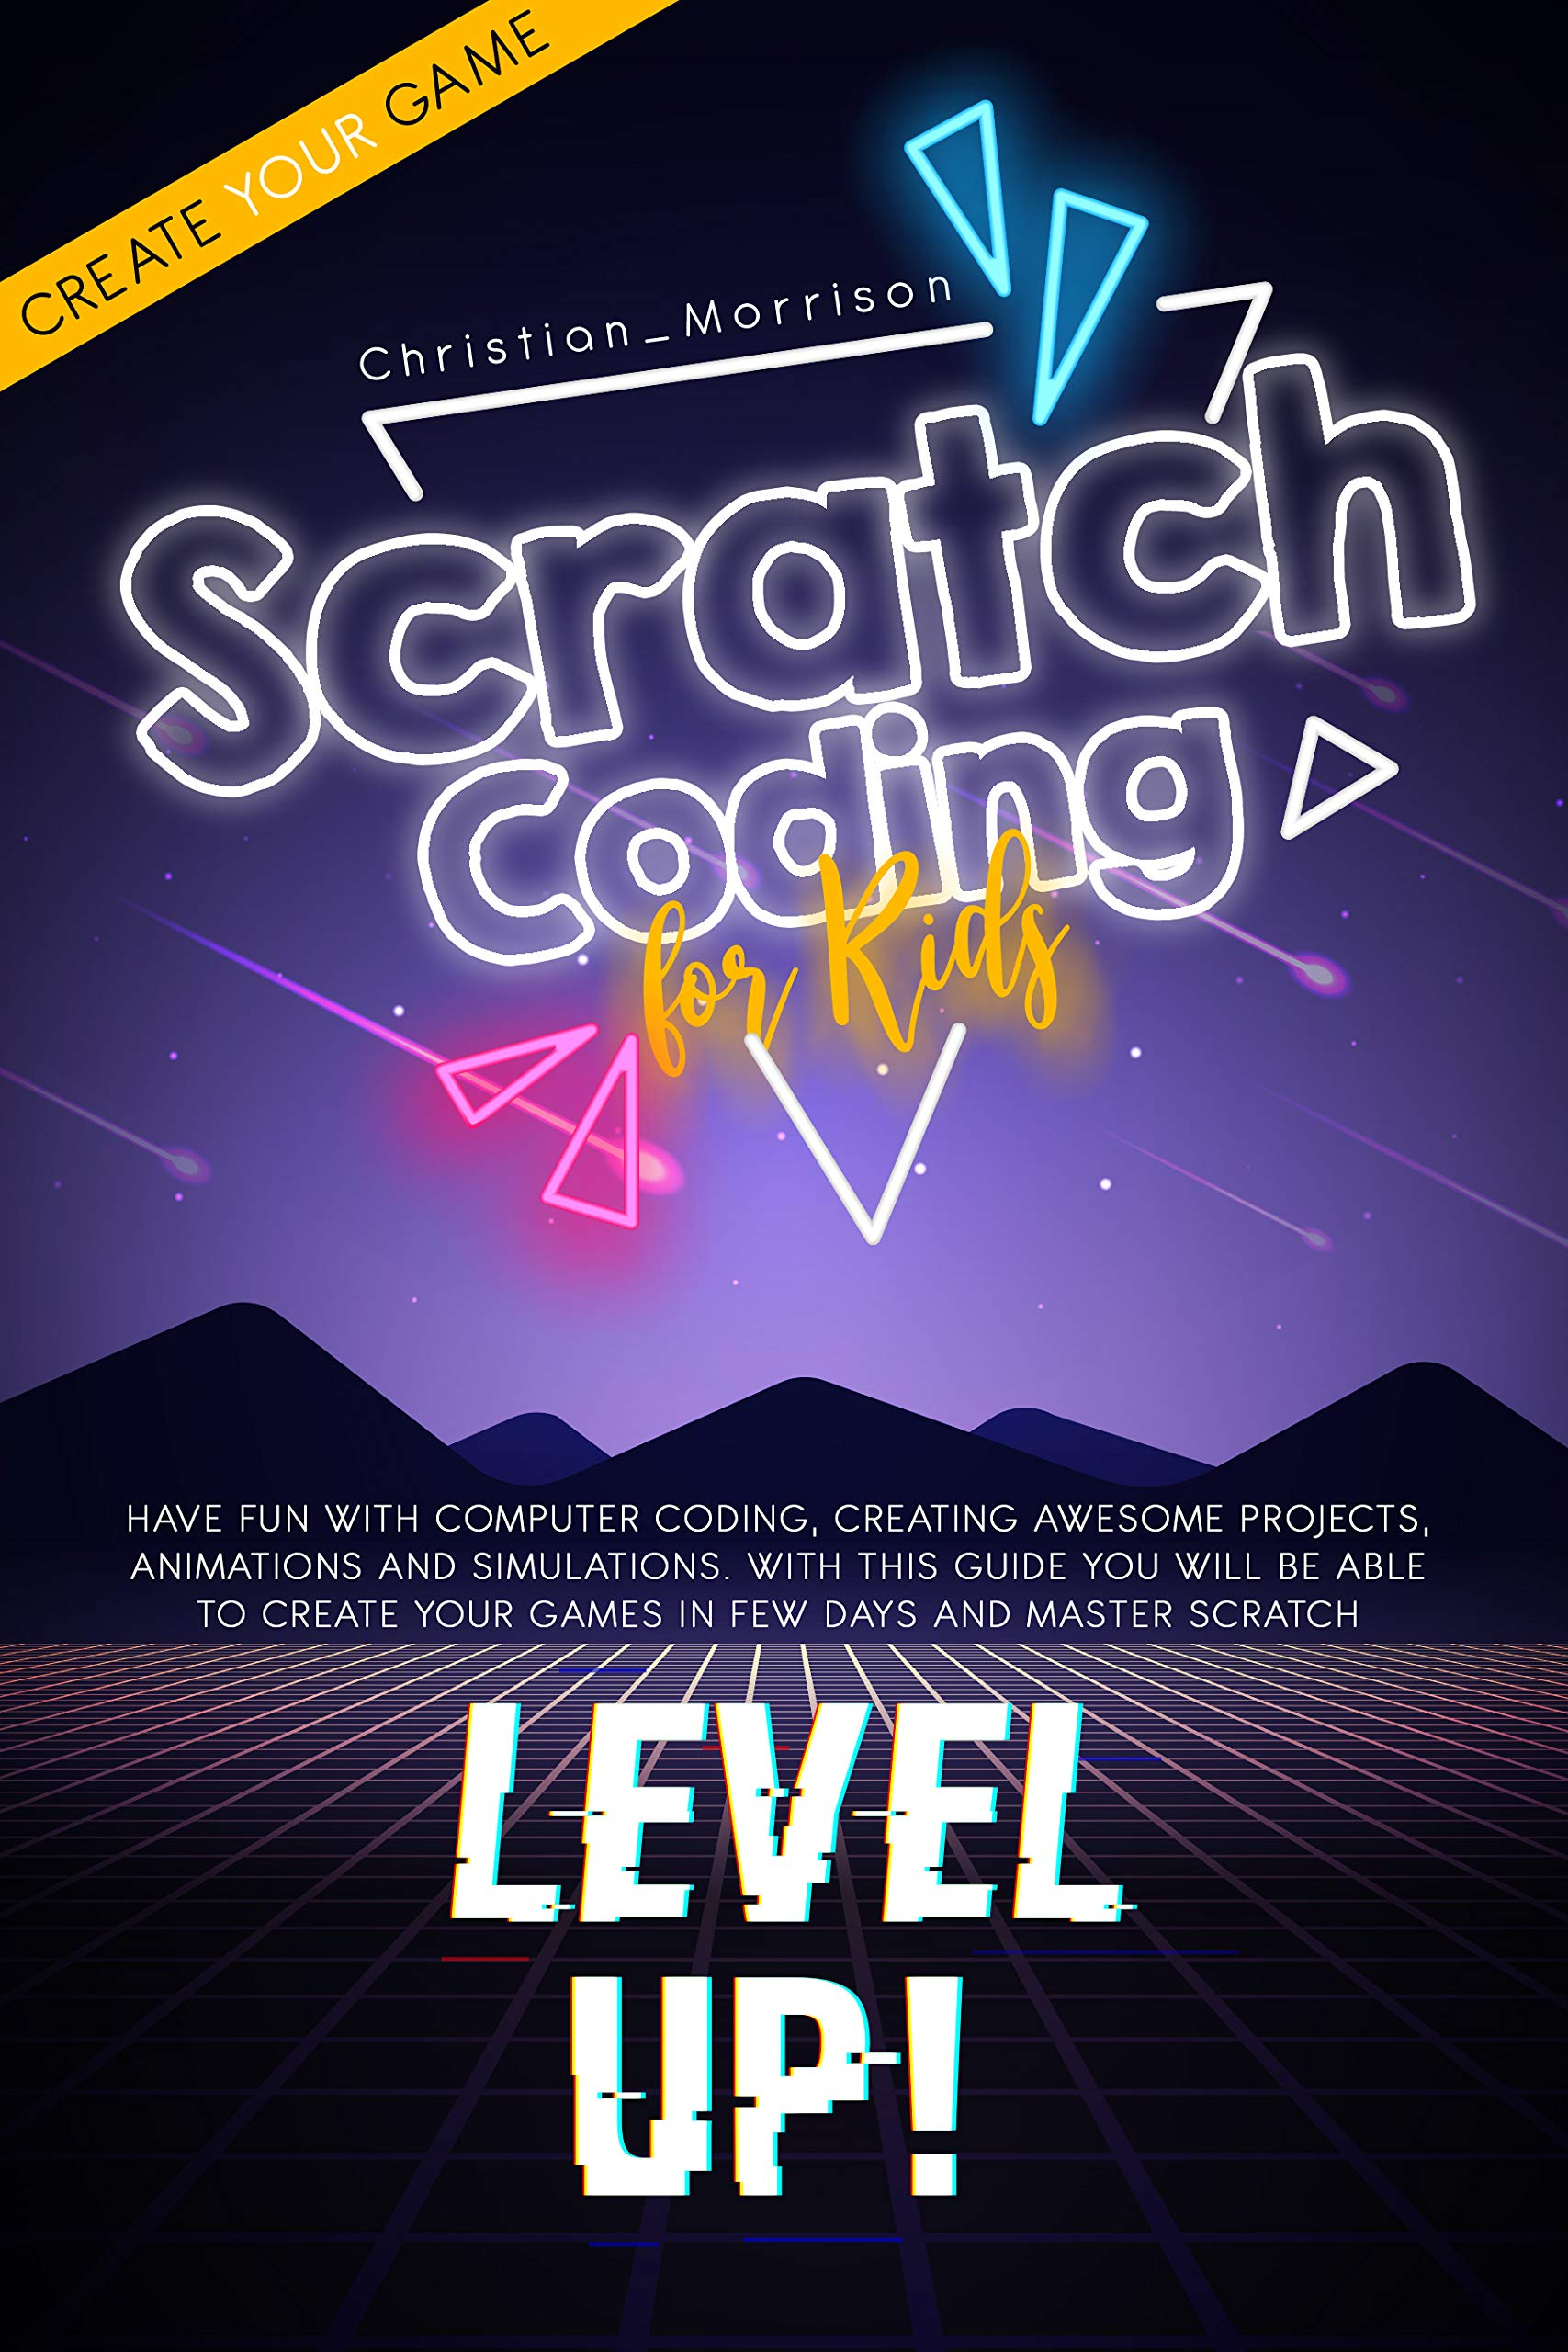 SCRATCH CODING FOR KIDS: Have Fun with Computer Coding, Creating Awesome Projects, Animations And Simulations. With this Guide You Will be Able to Create Your Games in Few Days and Master Scratch